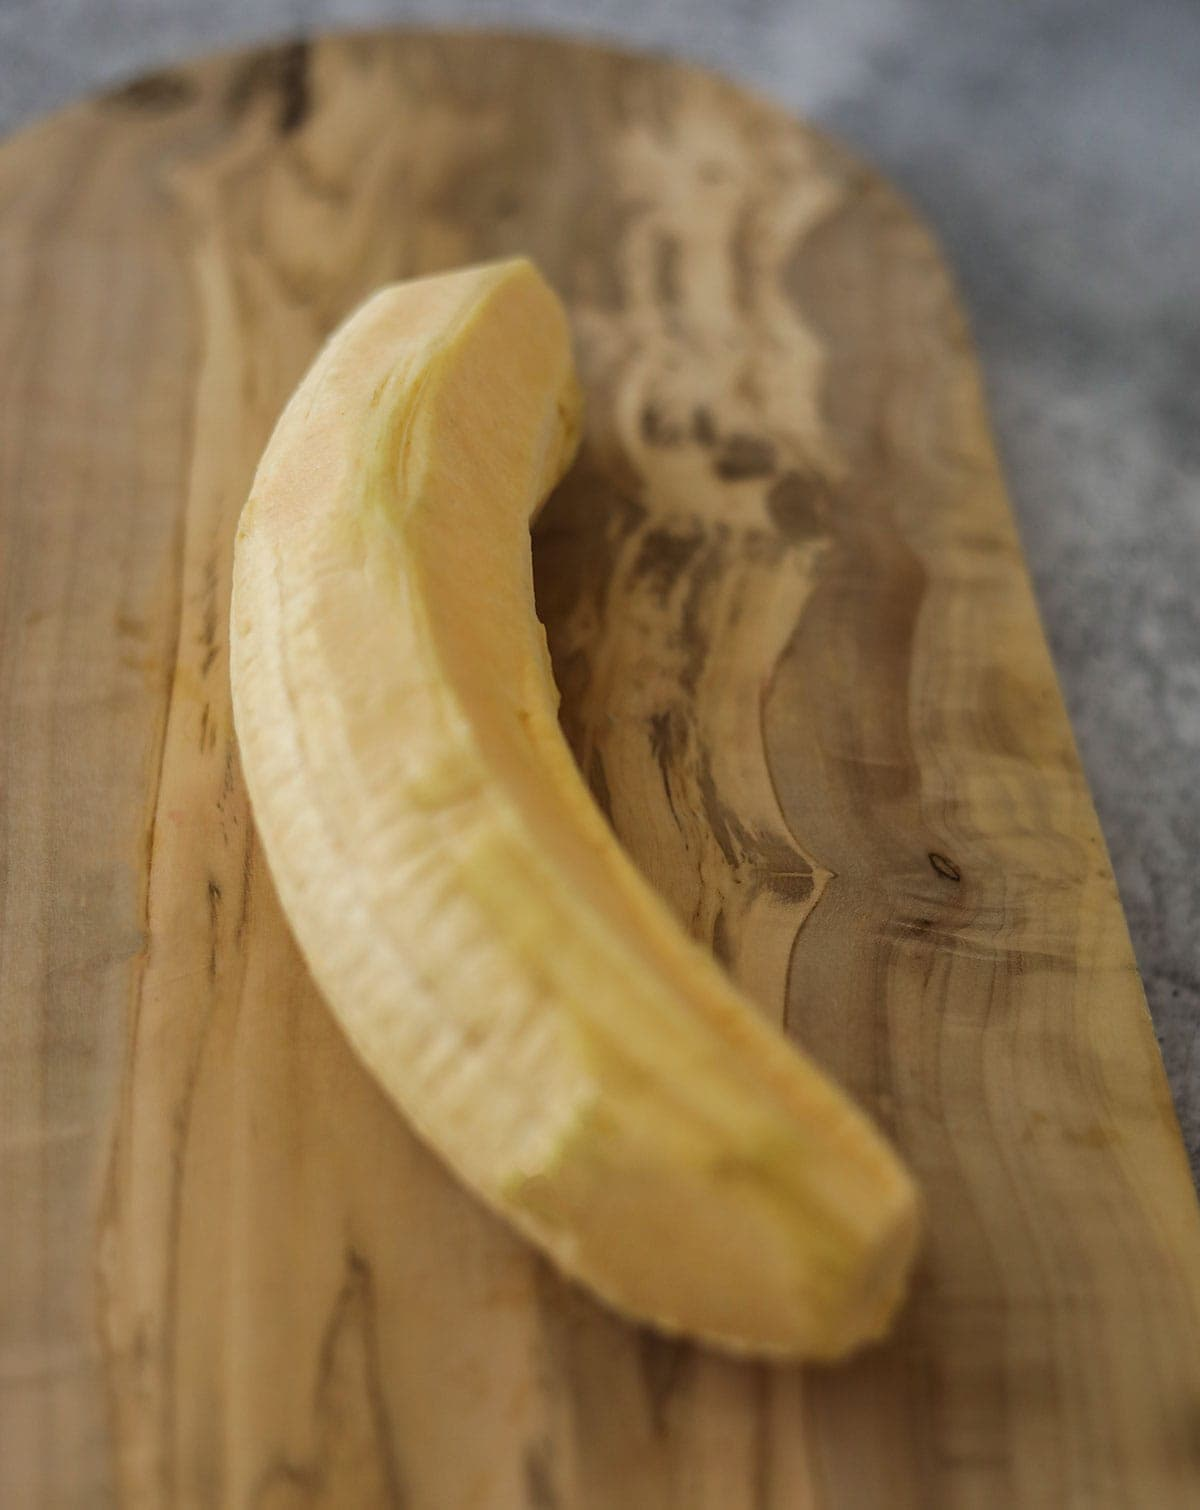 peeled plantain for tostones